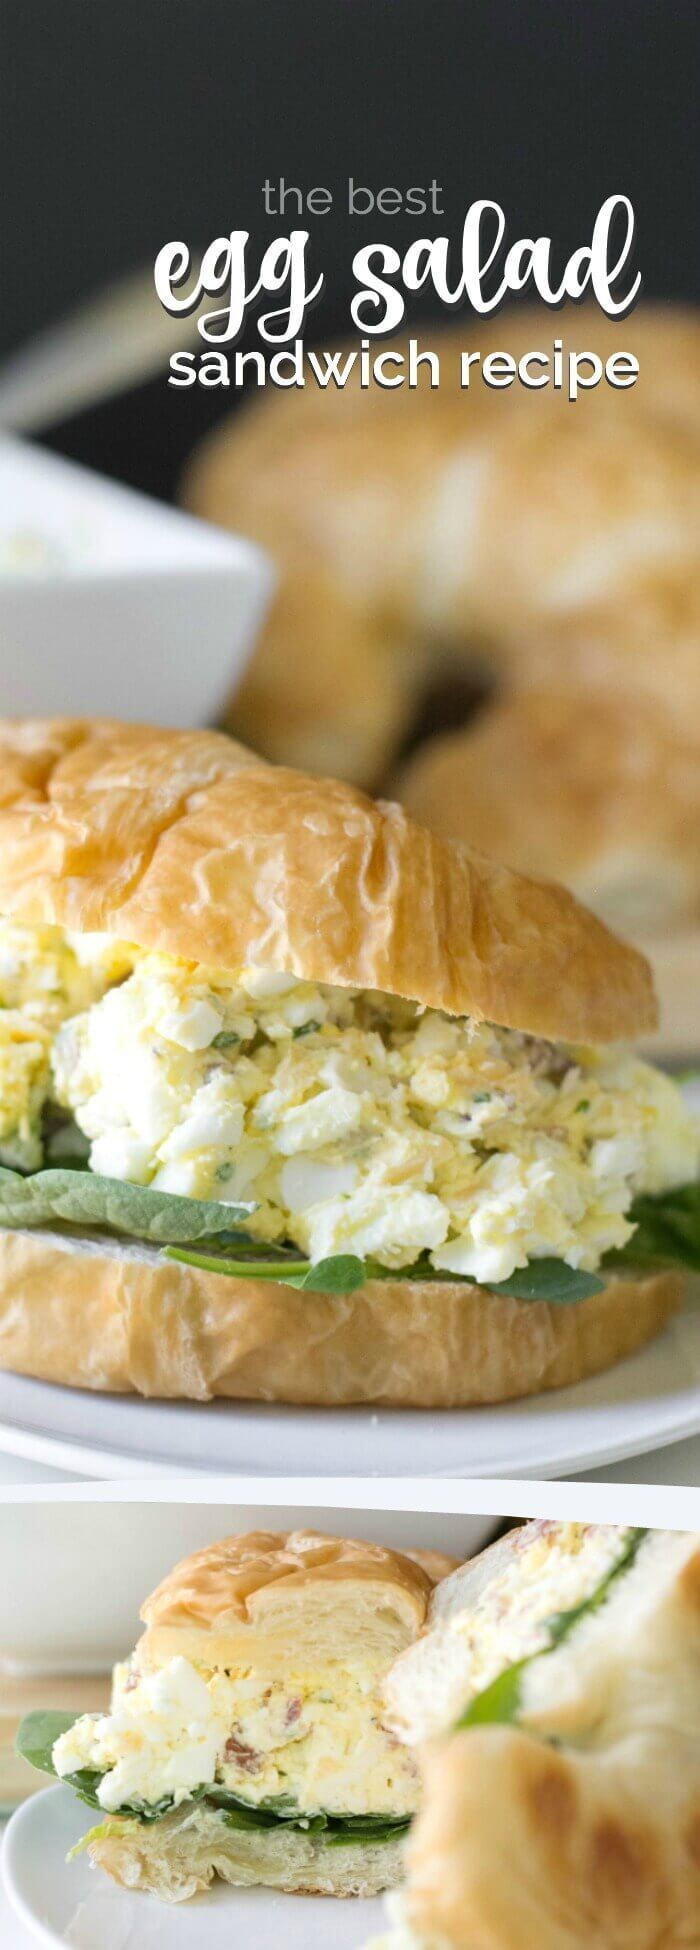 The Best Egg Salad Sandwich Recipe | Lunch | Dinner